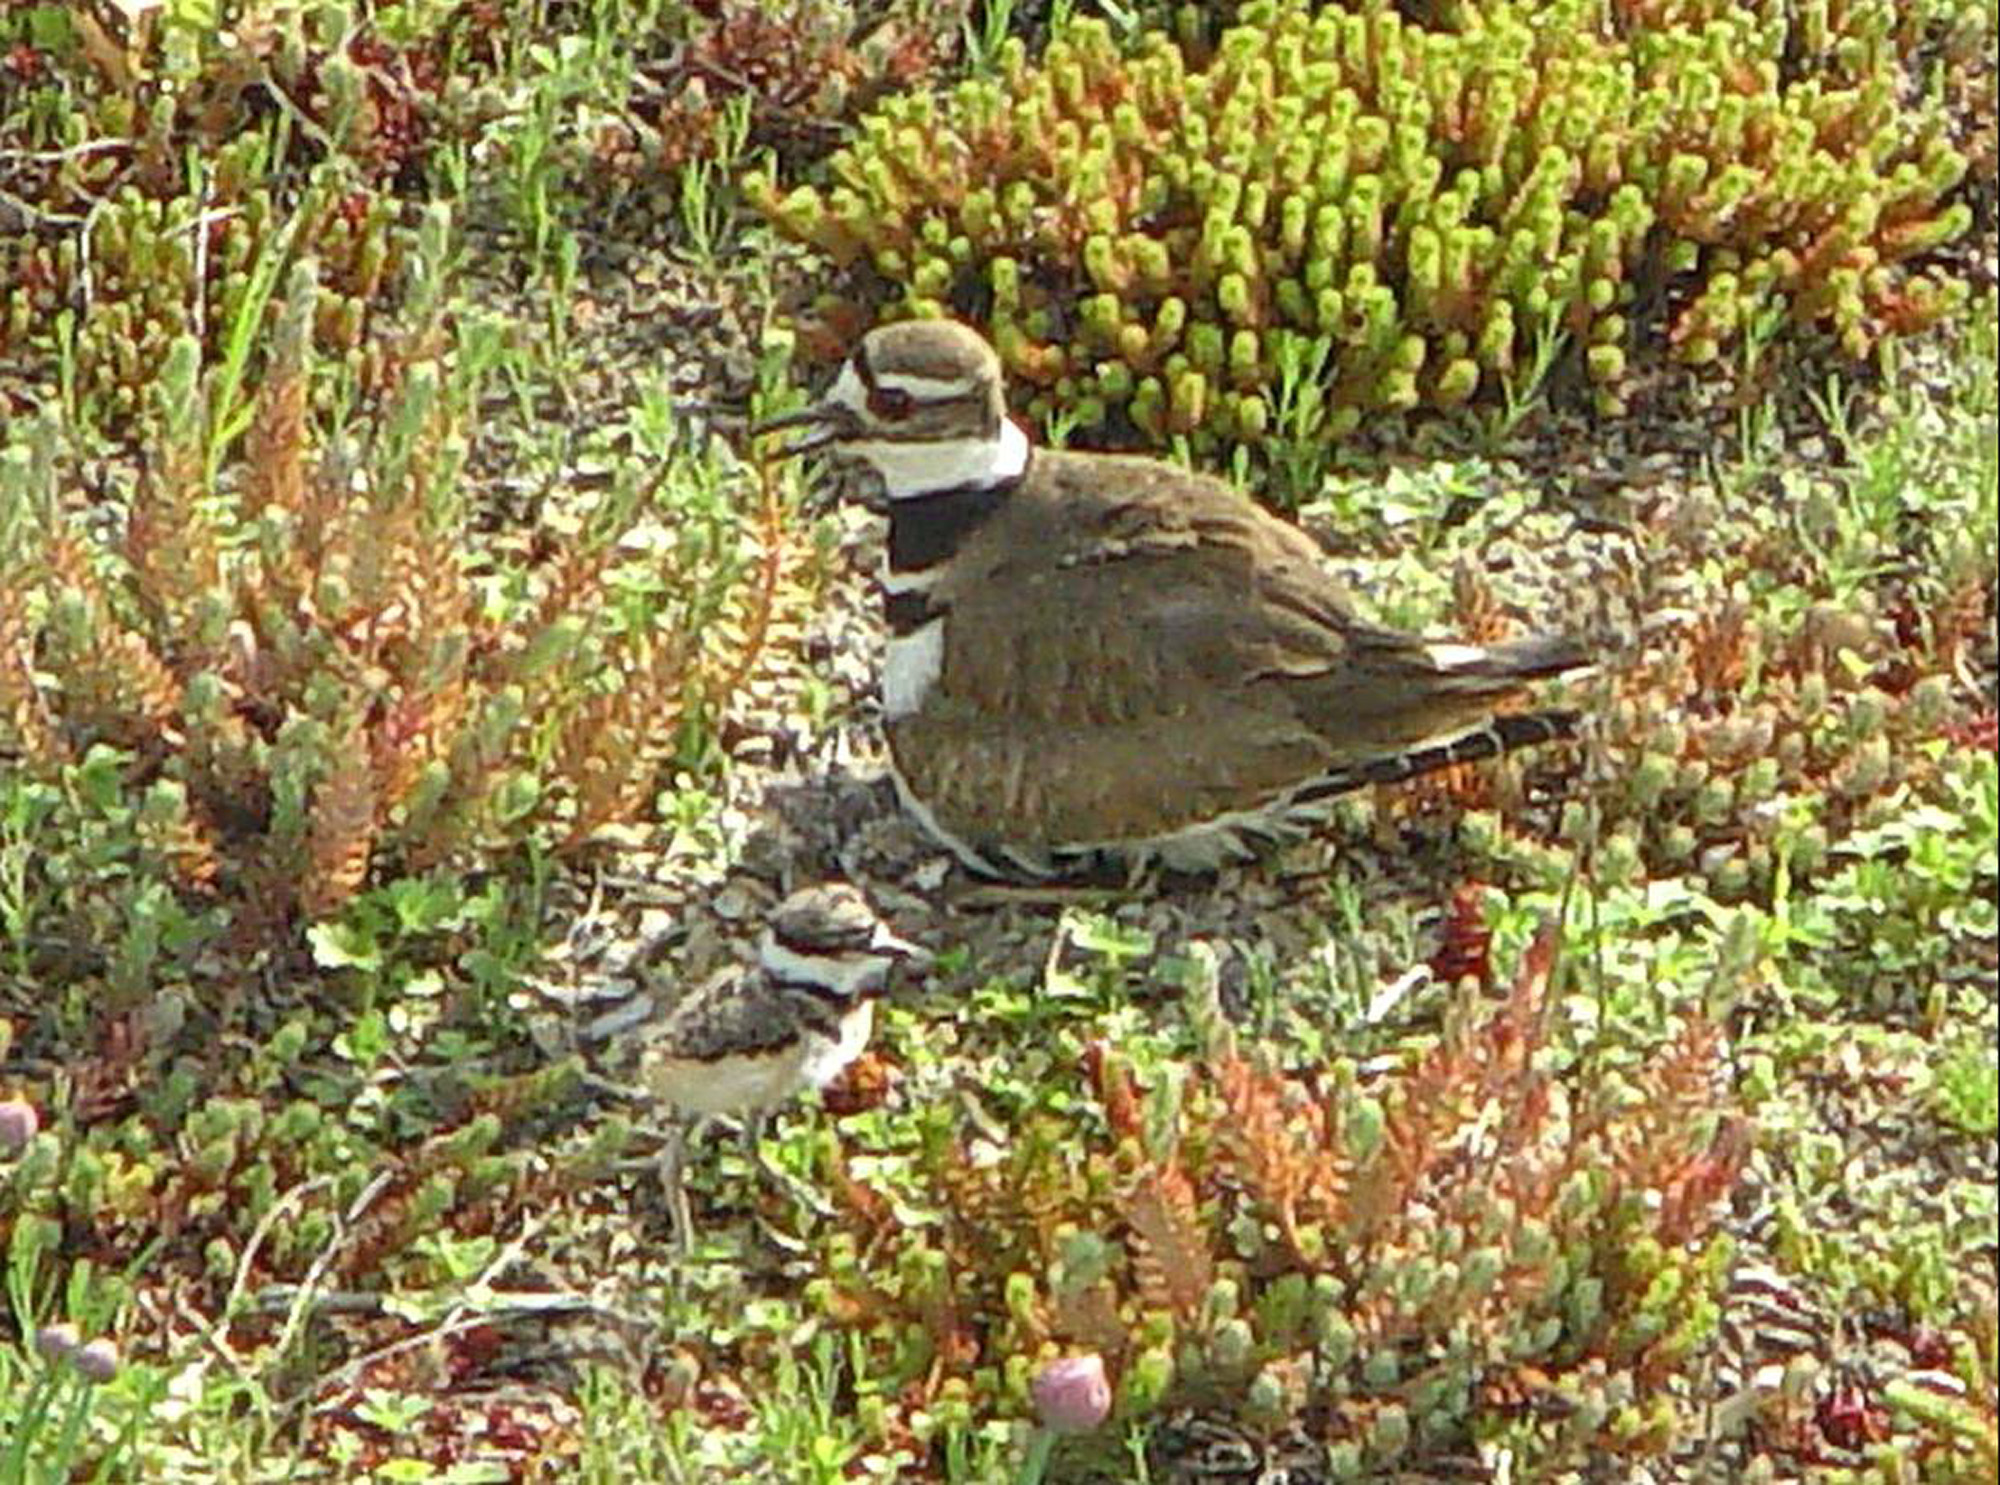 Killdeer And Chick On A Large Chicago Green Roof. Killdeer Are Partial To Green  Roof